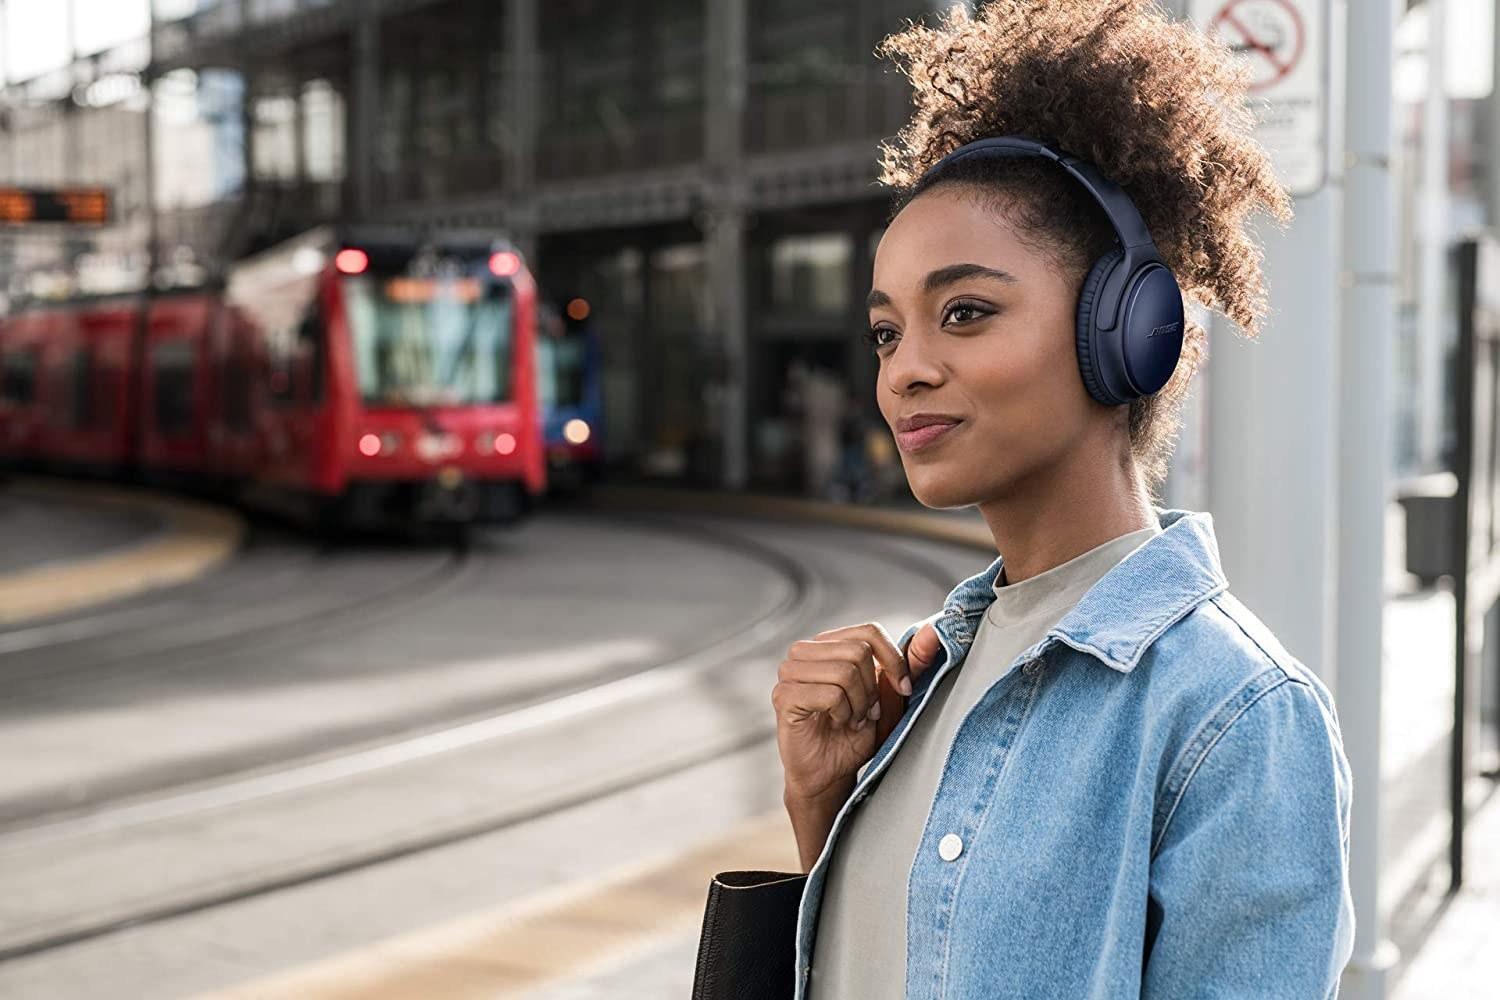 A person waiting for a streetcar while wearing the headphones